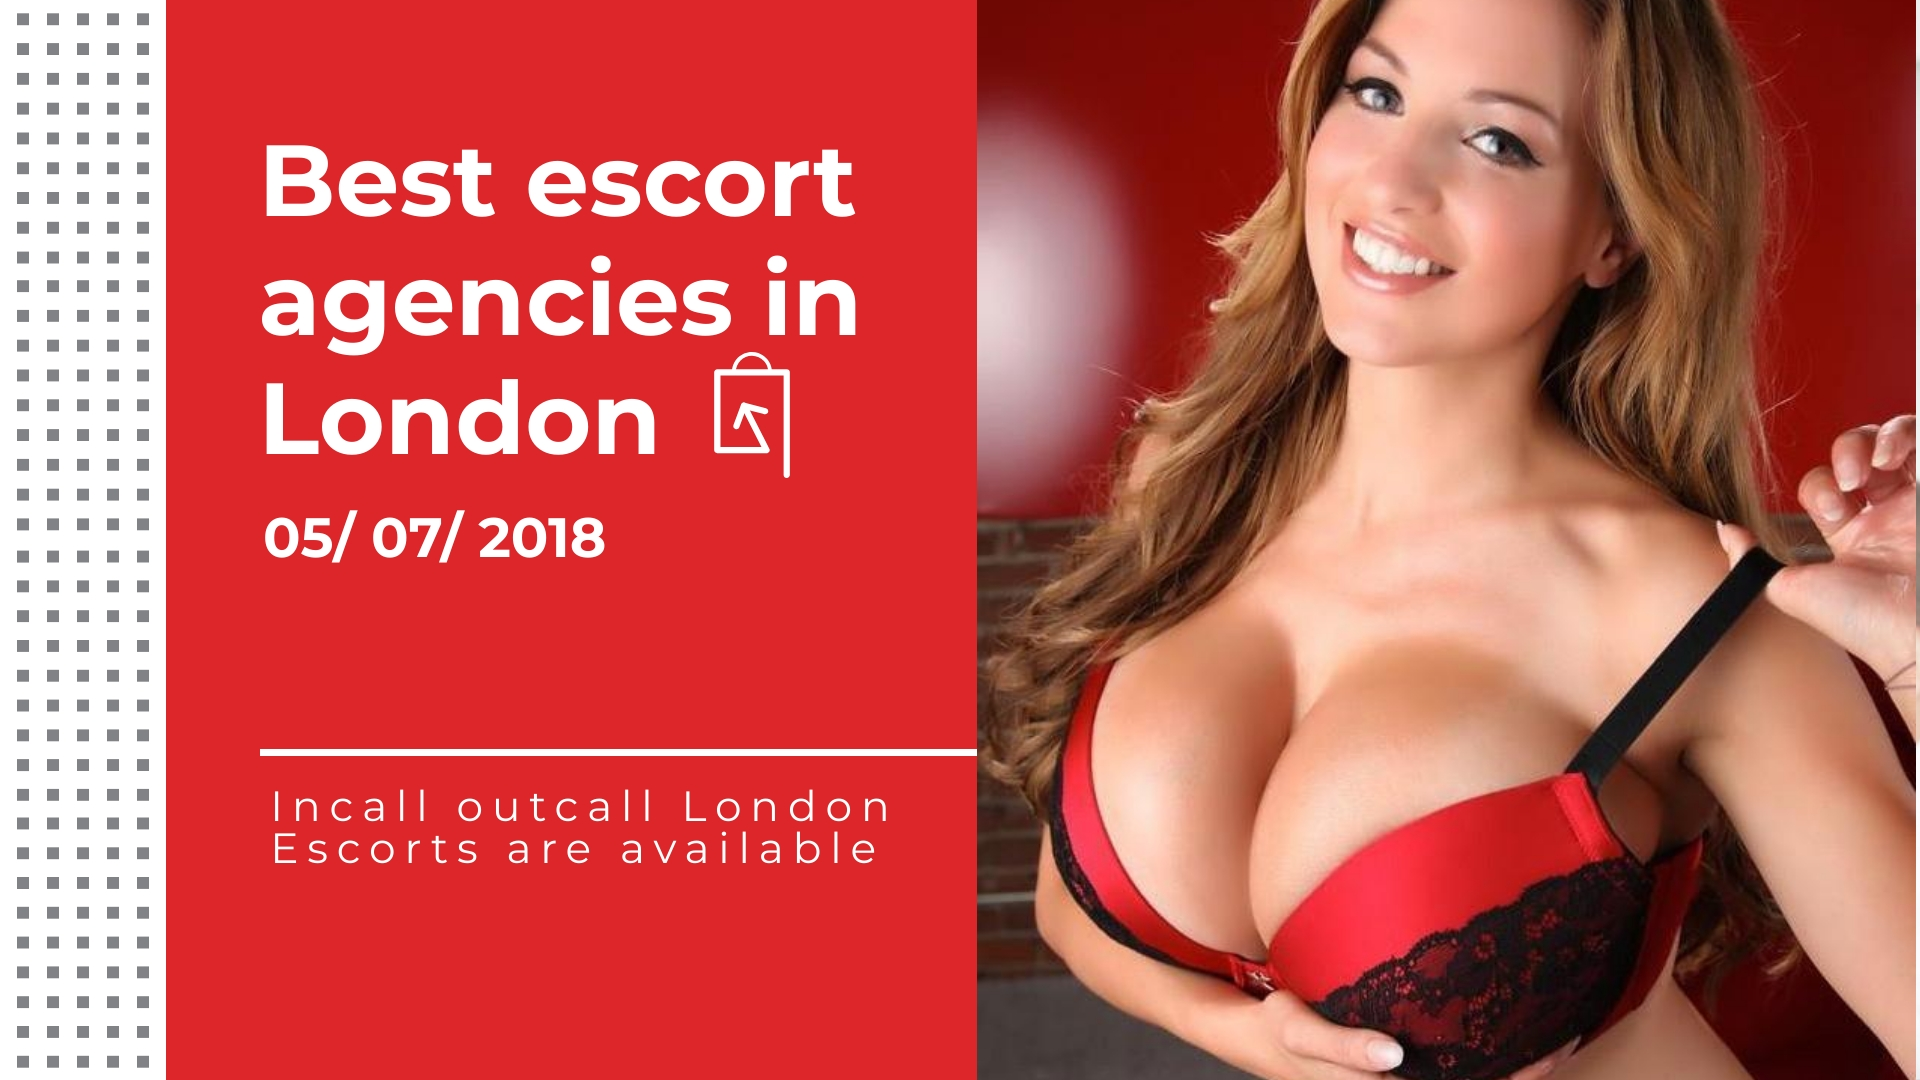 best escort agencies in London